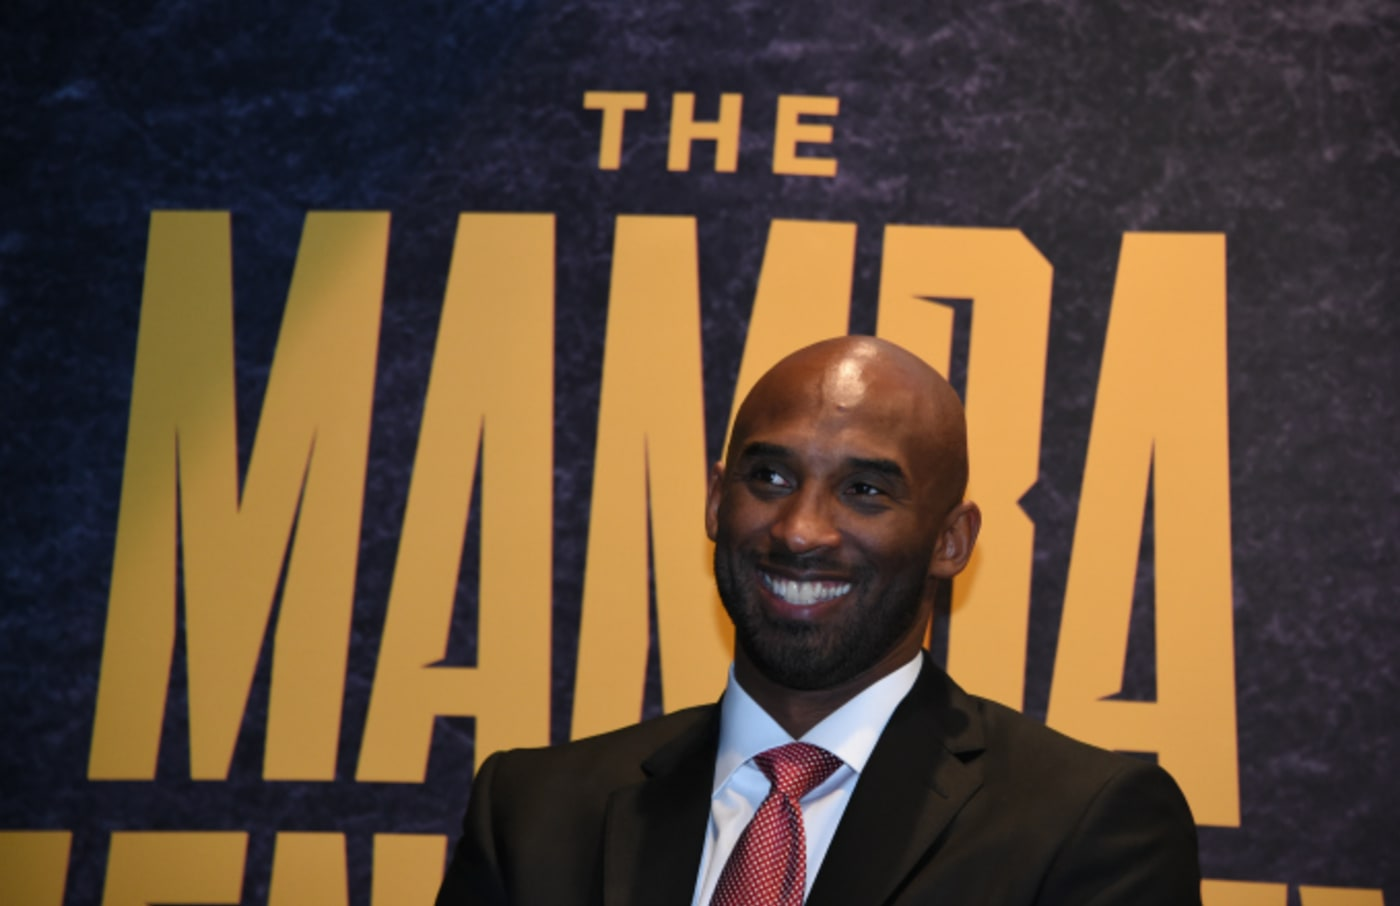 Kobe Bryant poses for a photo during the Mamba Mentality book launch